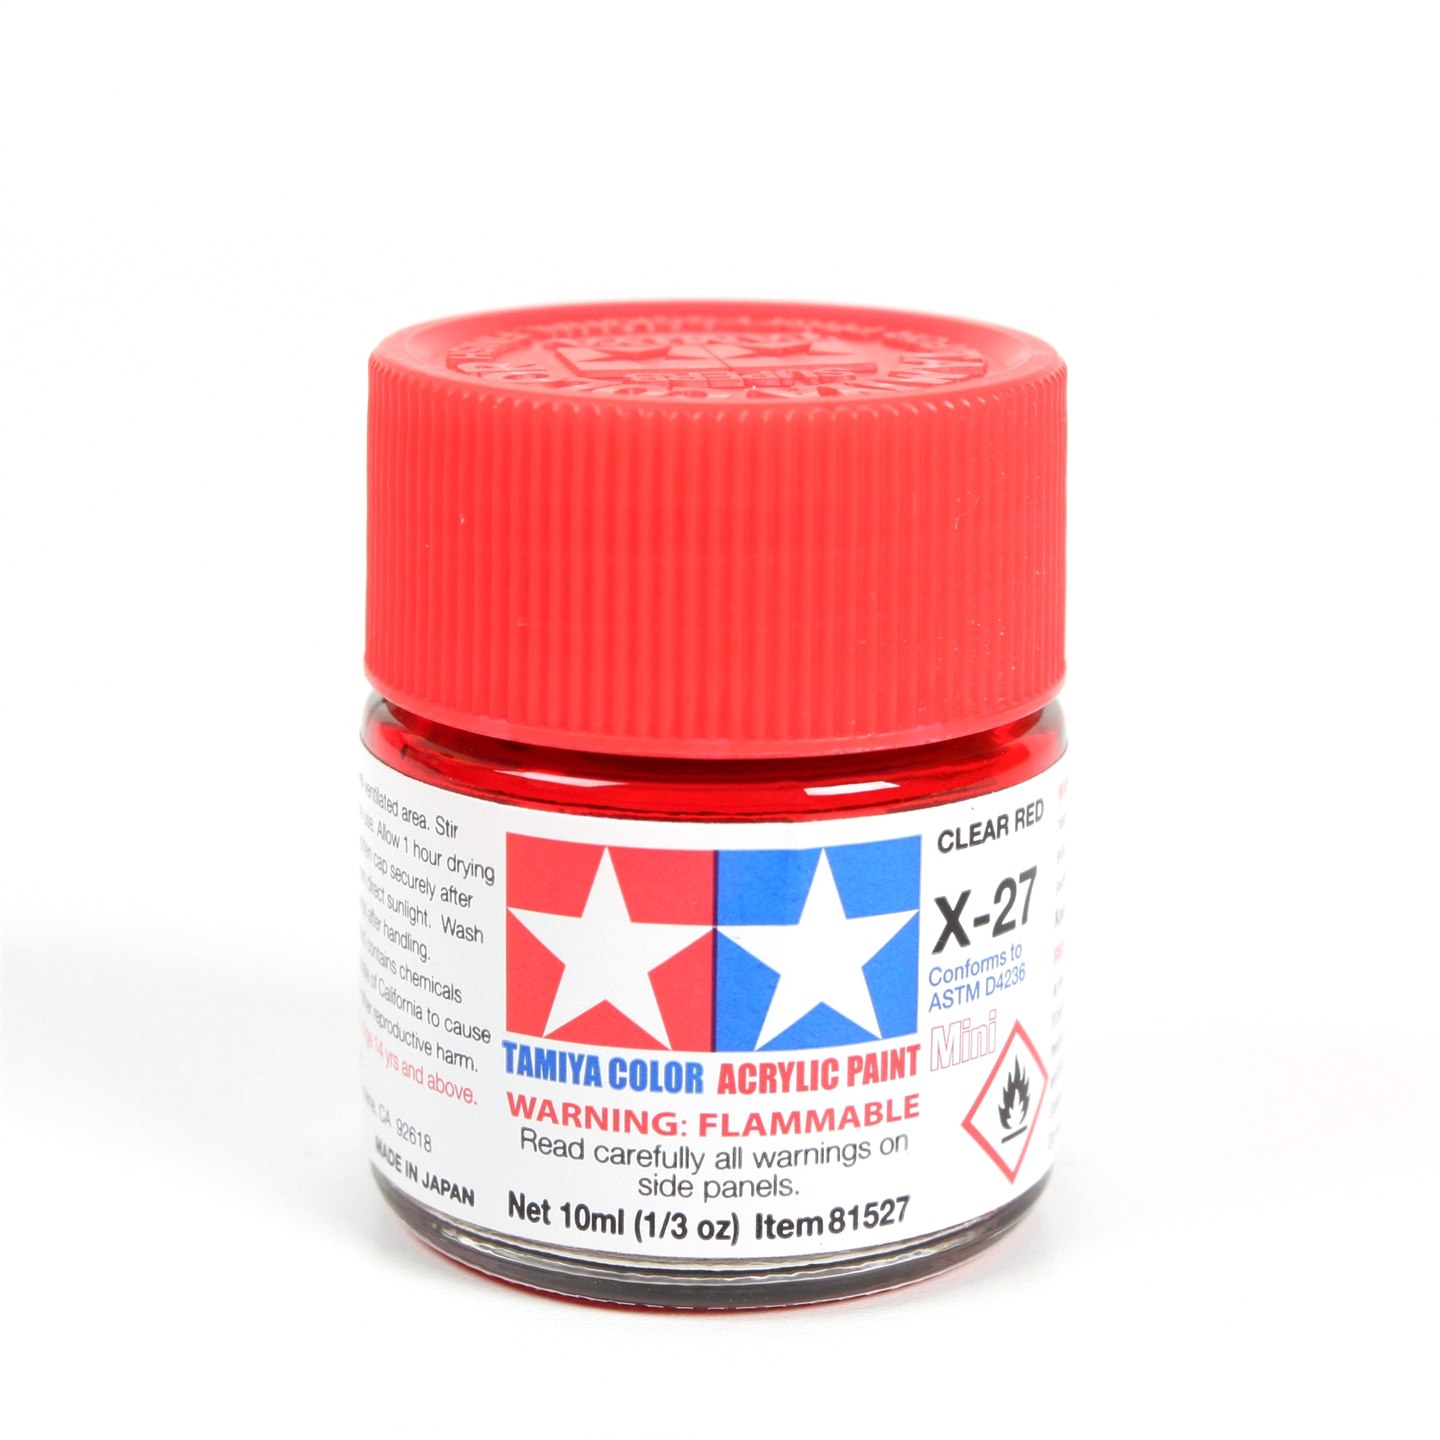 Tamiya Color Acrylic Paint Mini X-27 Clear Red (10ML)